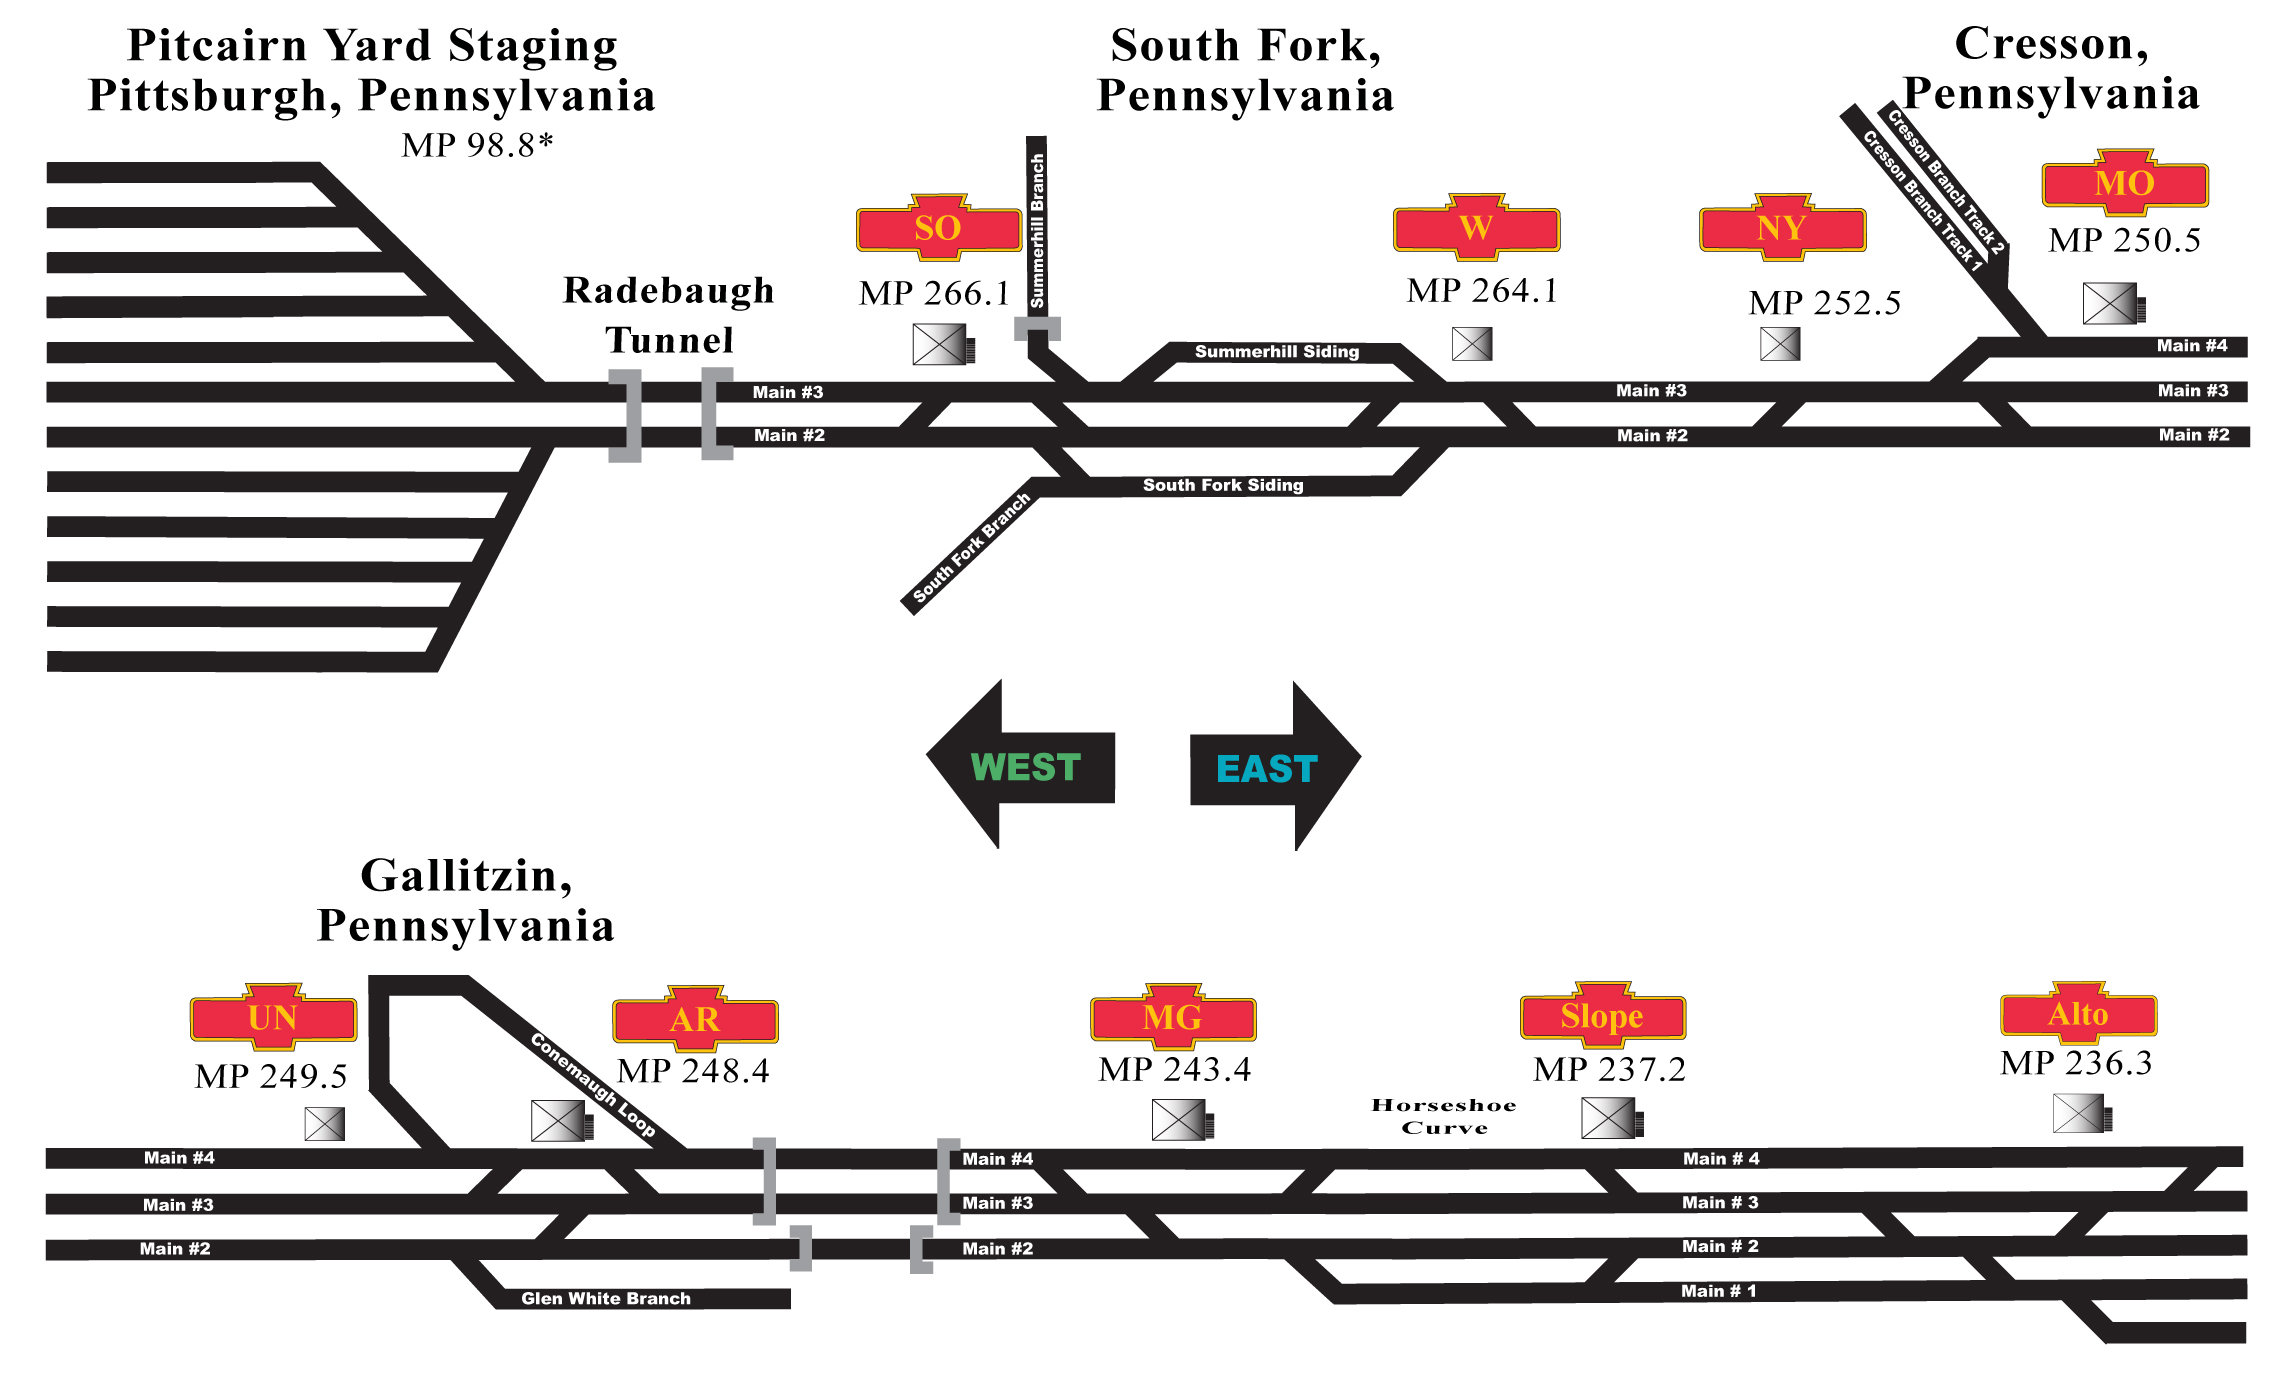 Dacor Wall Oven Wiring Diagram as well Gallitzin Prr Track Diagram besides Ge 300 Line Control Wiring Diagram additionally Dcs F 14 Update Wiring Diagrams together with Names Engine Parts Diagram. on dacor wiring diagrams